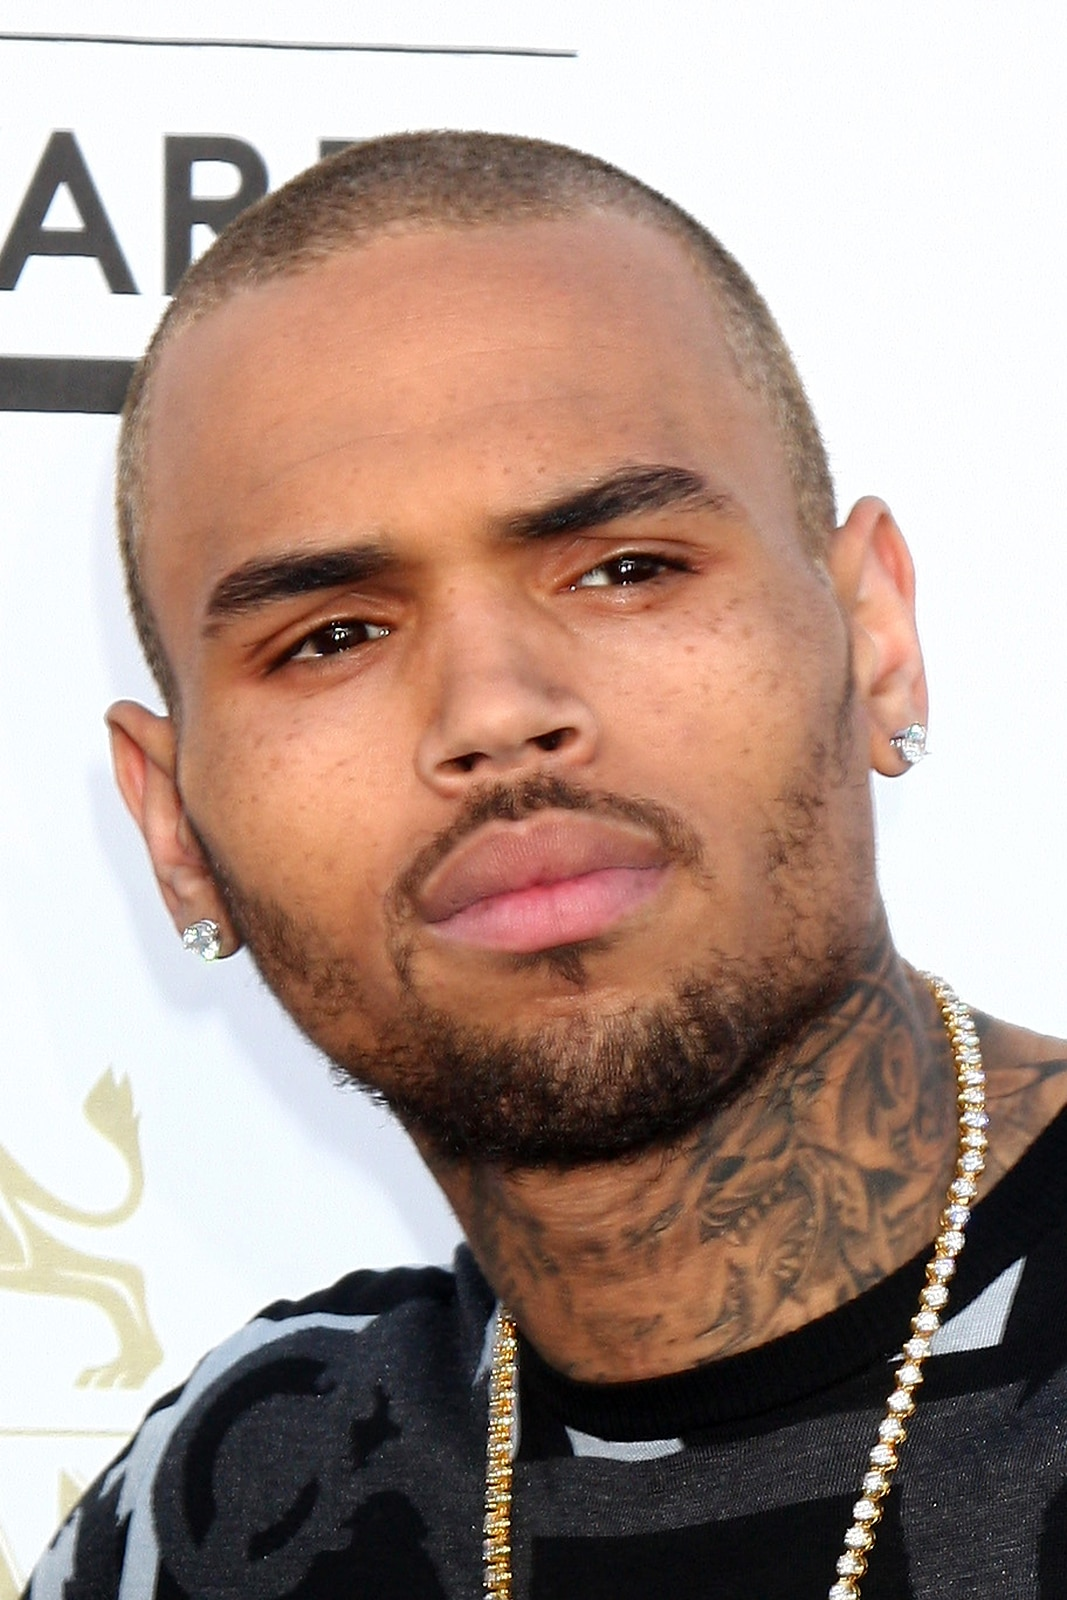 Chris Brown detenido en Las Filipinas